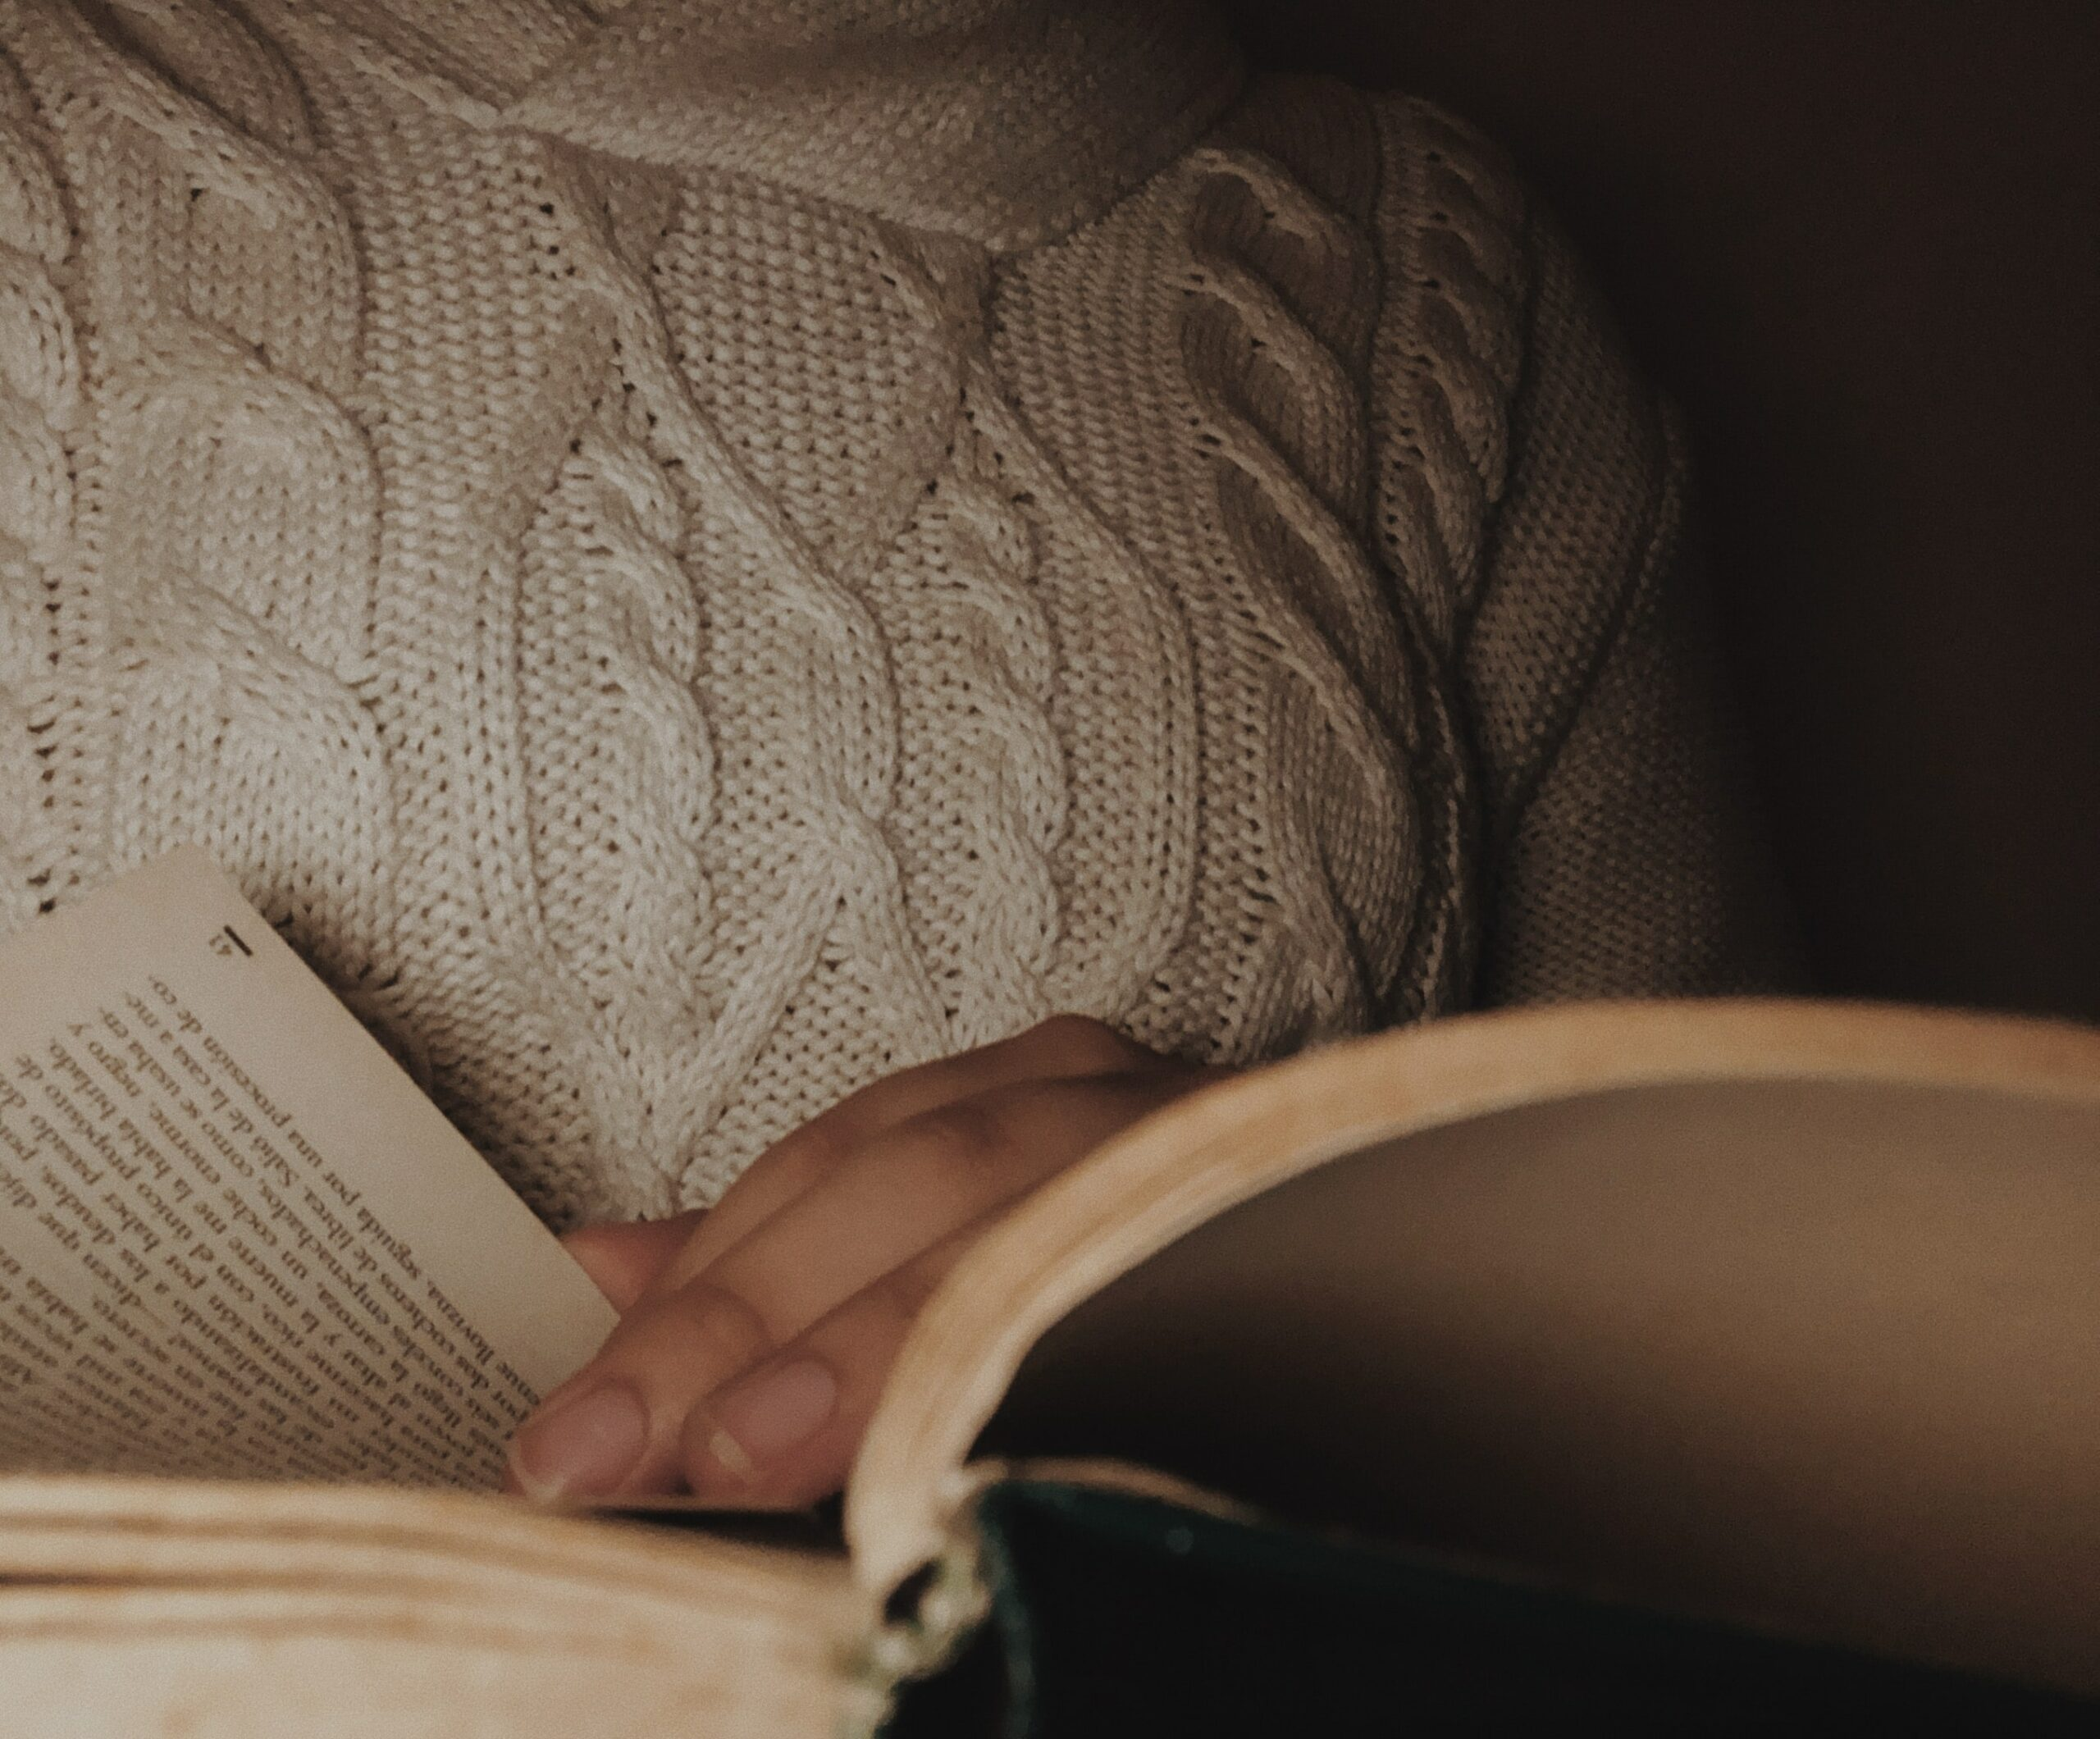 A woman reading a book in dim lighting - taking a break from trying to sleep, a way to treat insomnia naturally